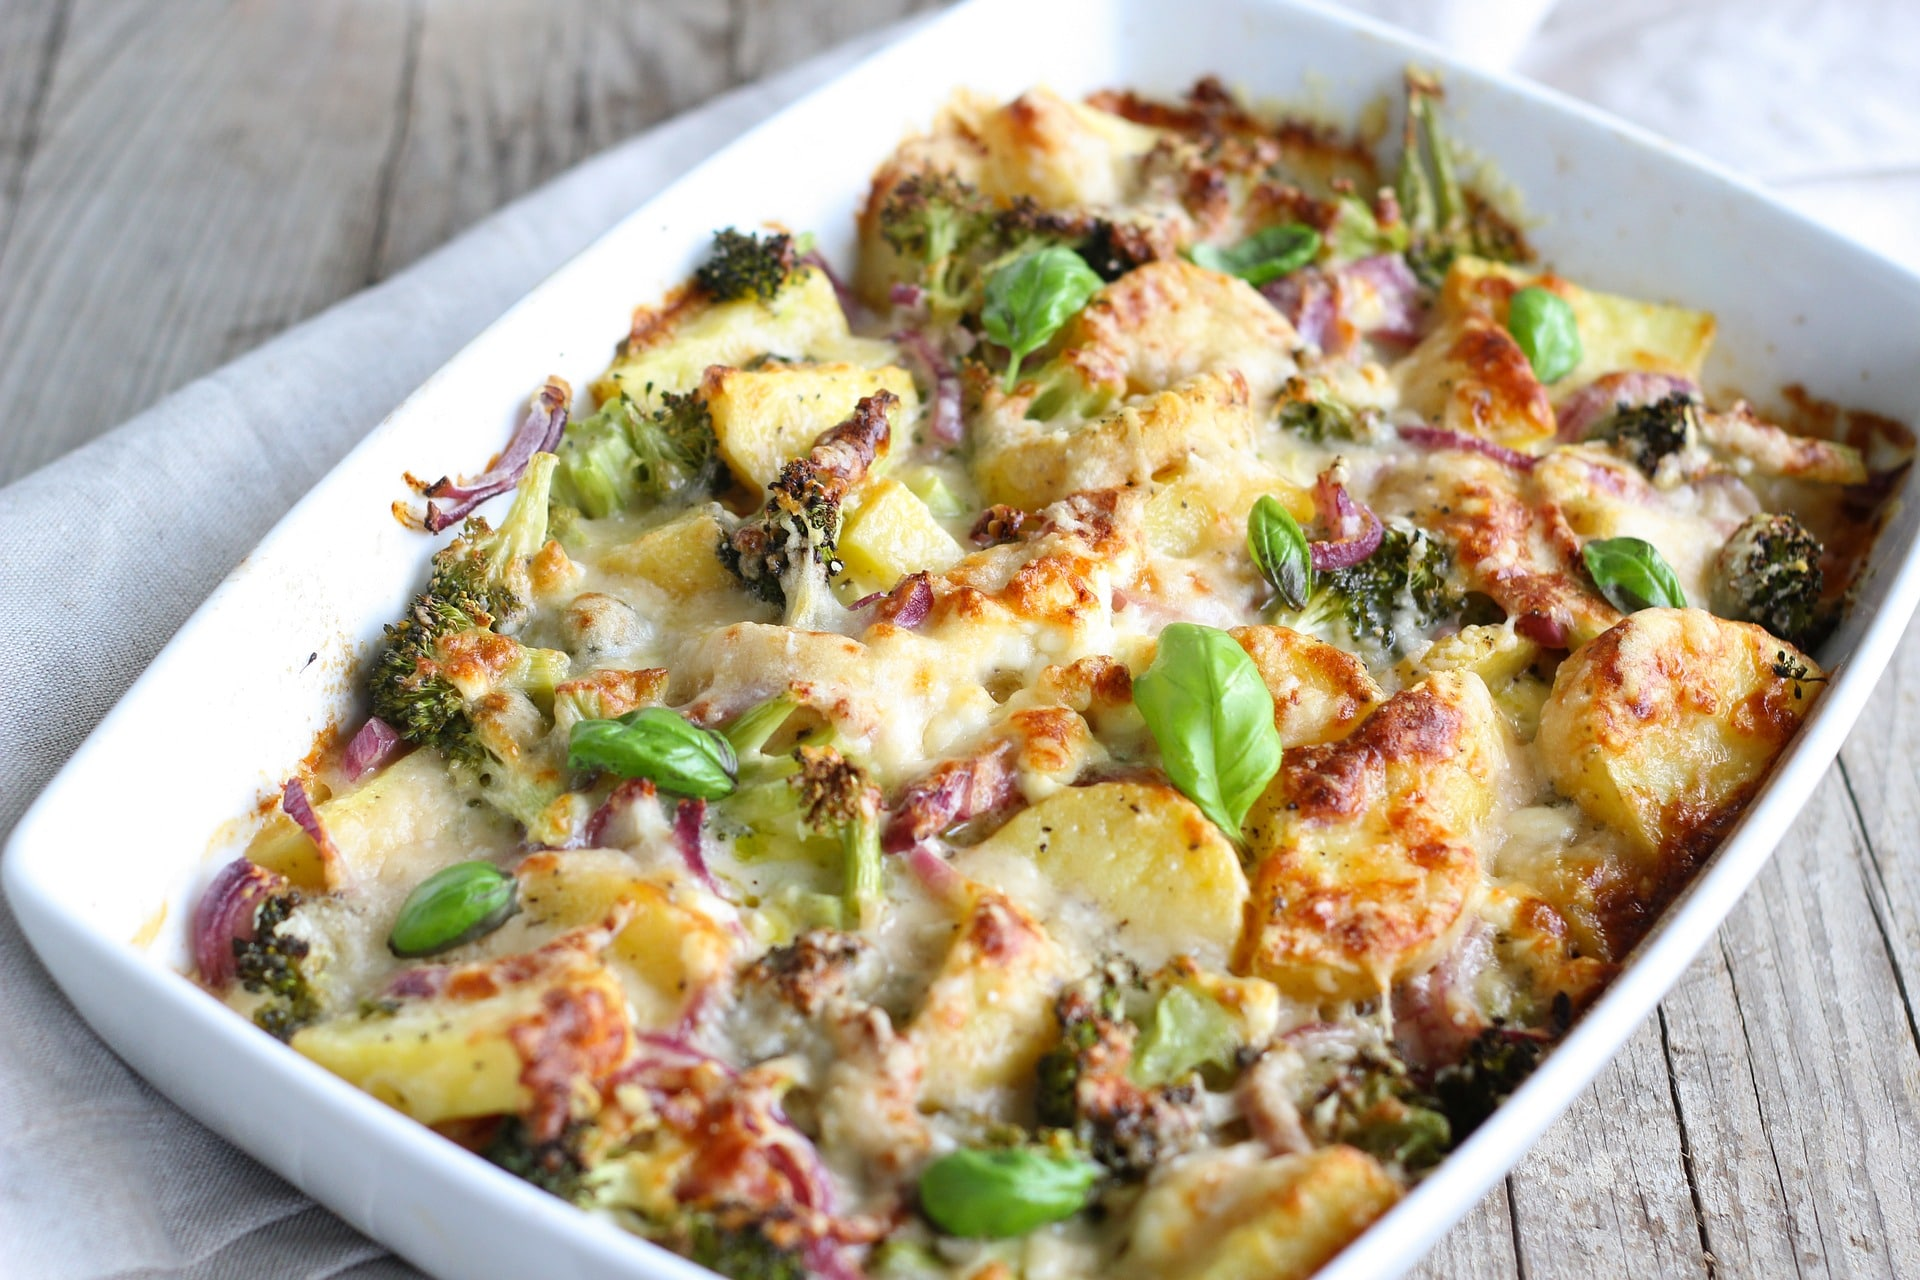 Creamy tarragon chicken bake - An all-in-one type of dish from BBC Good Food. This recipe is gluten free, egg free, dairy free and nut free so can cater for lots of diets but you can easily swap and change ingredients to fit your preferences and diet.*Image shown is not from the recipe provided.